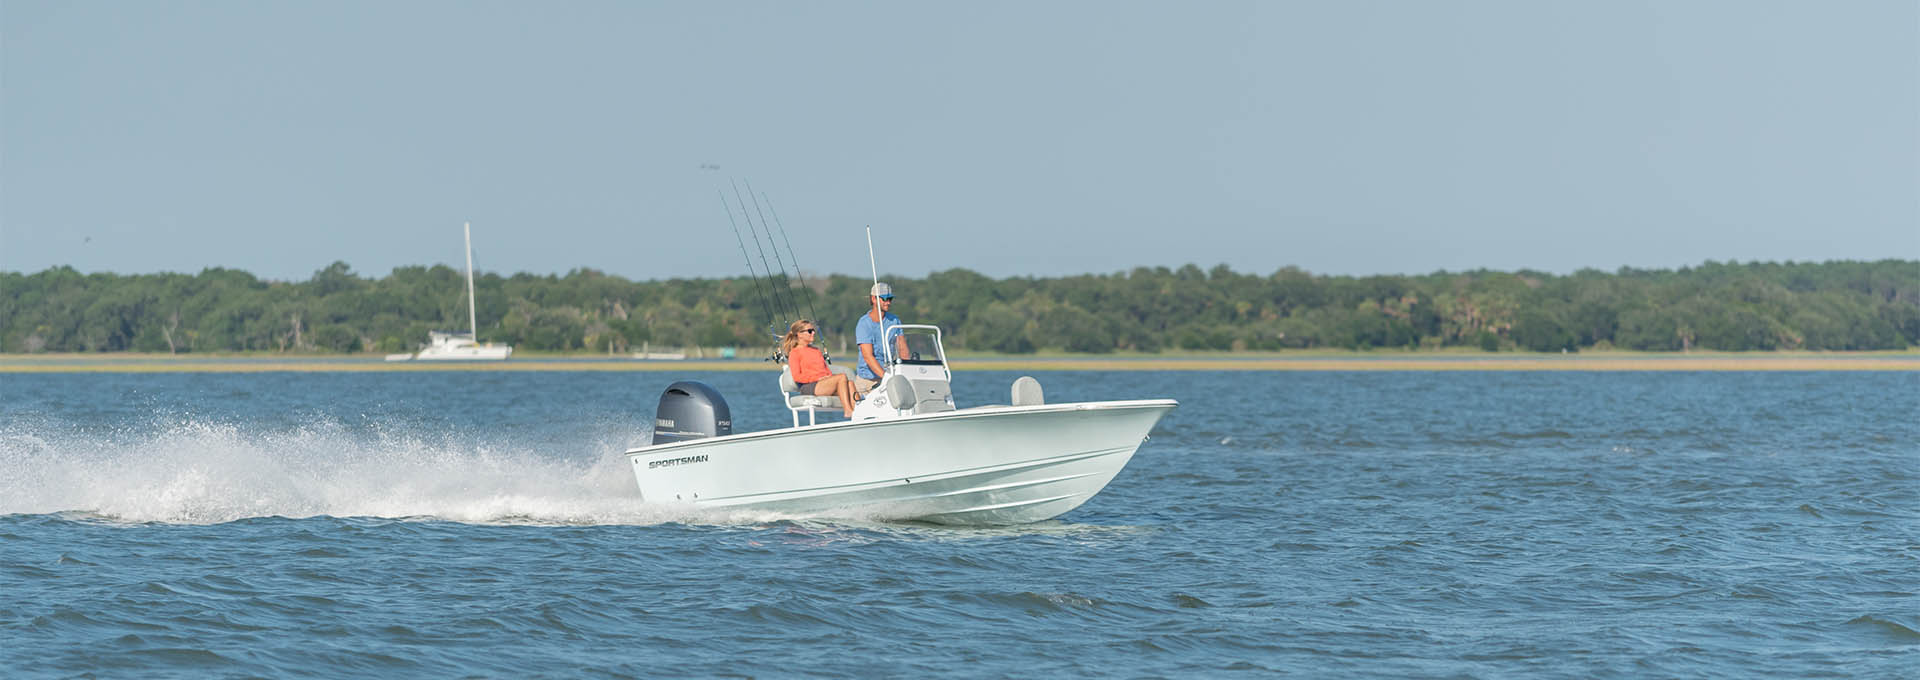 Slide show of images of the Masters 207 Bay Boat. This is image number 1.